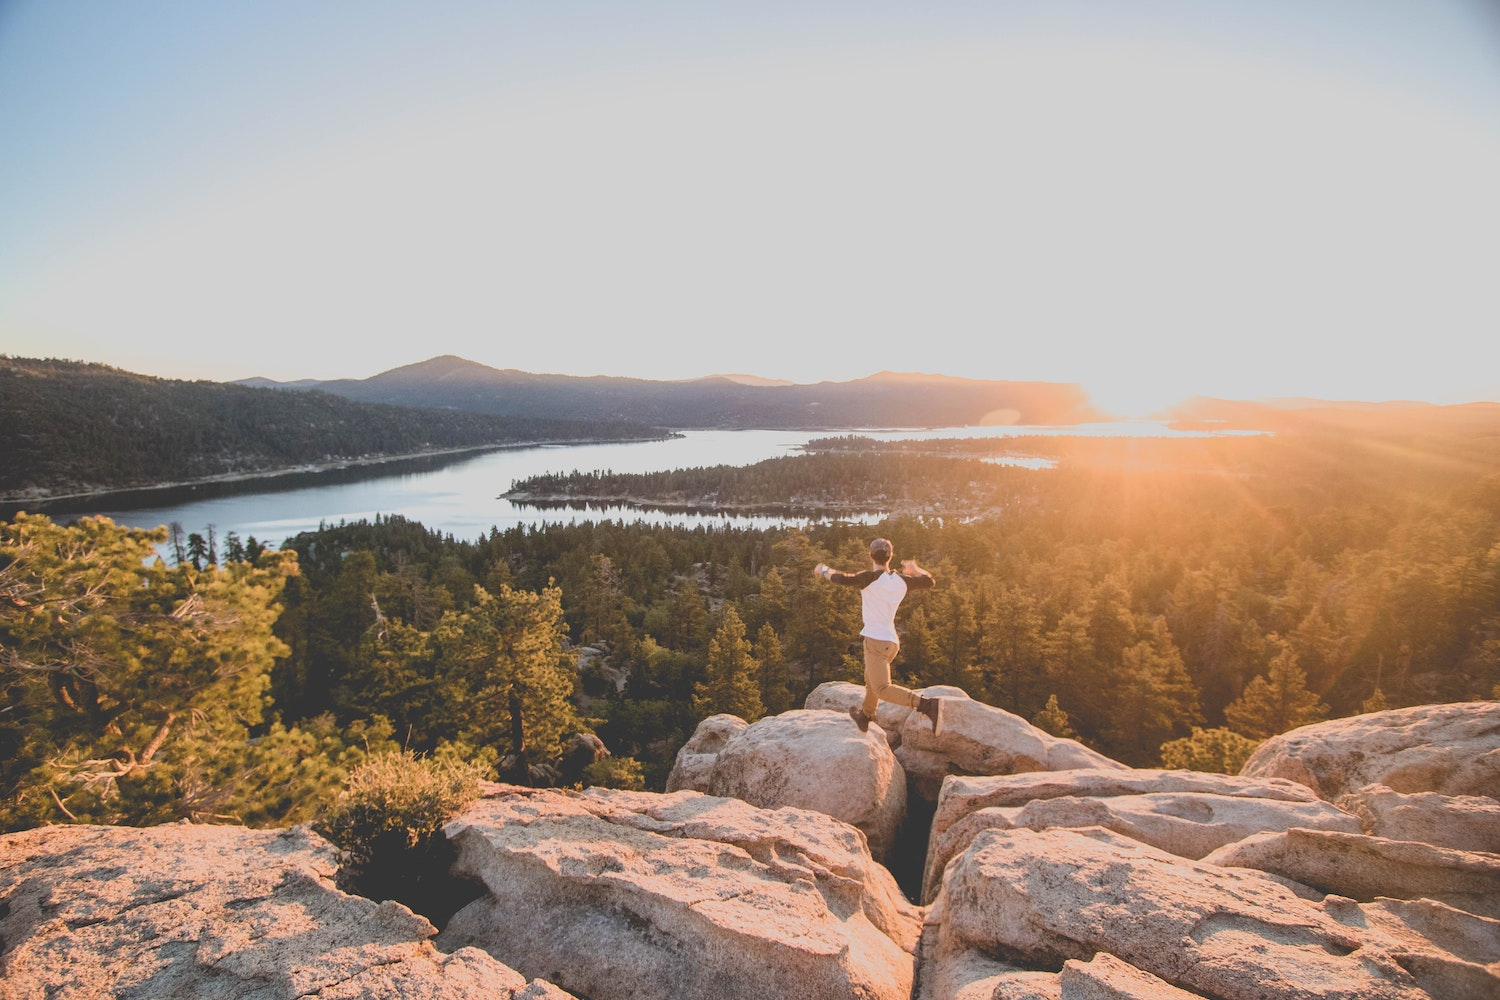 Things to do in Big Bear, California - Big Bear Airbnb Rentals